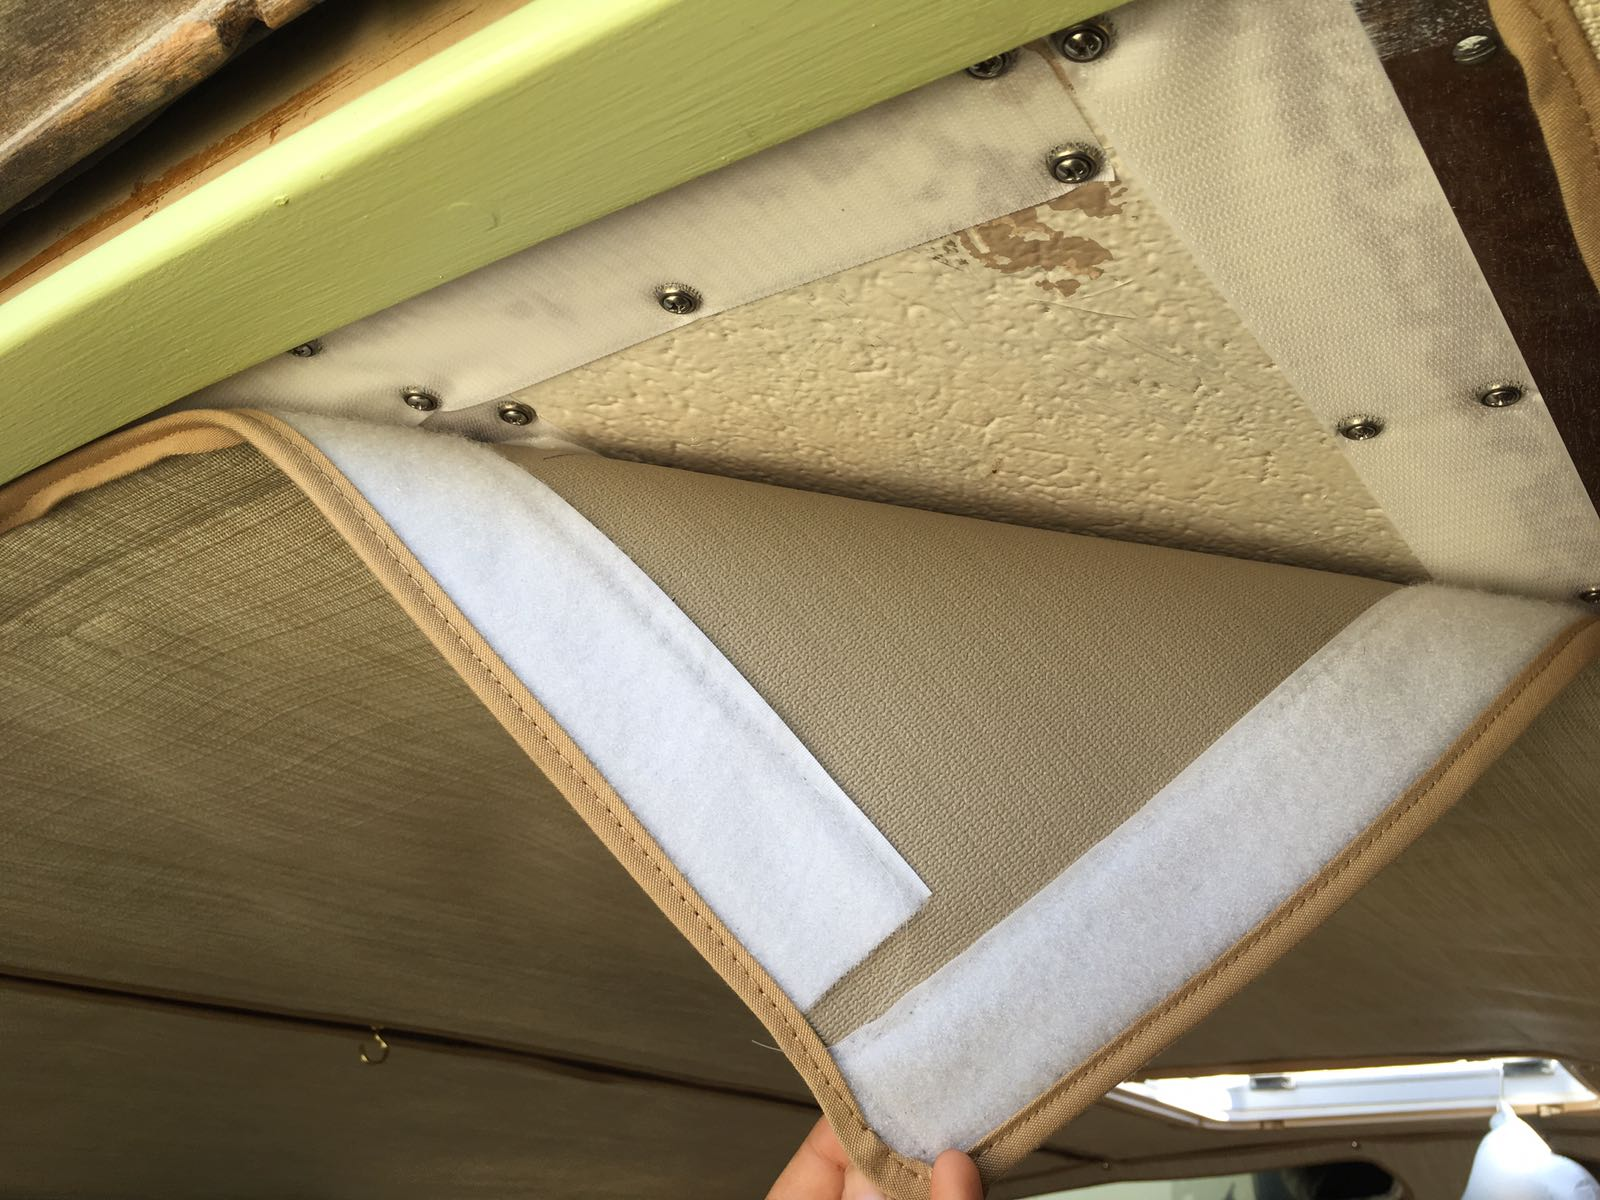 Refitting our Sailboat Interior: From an Antique Sailboat to a Floating Miami Beach House Style